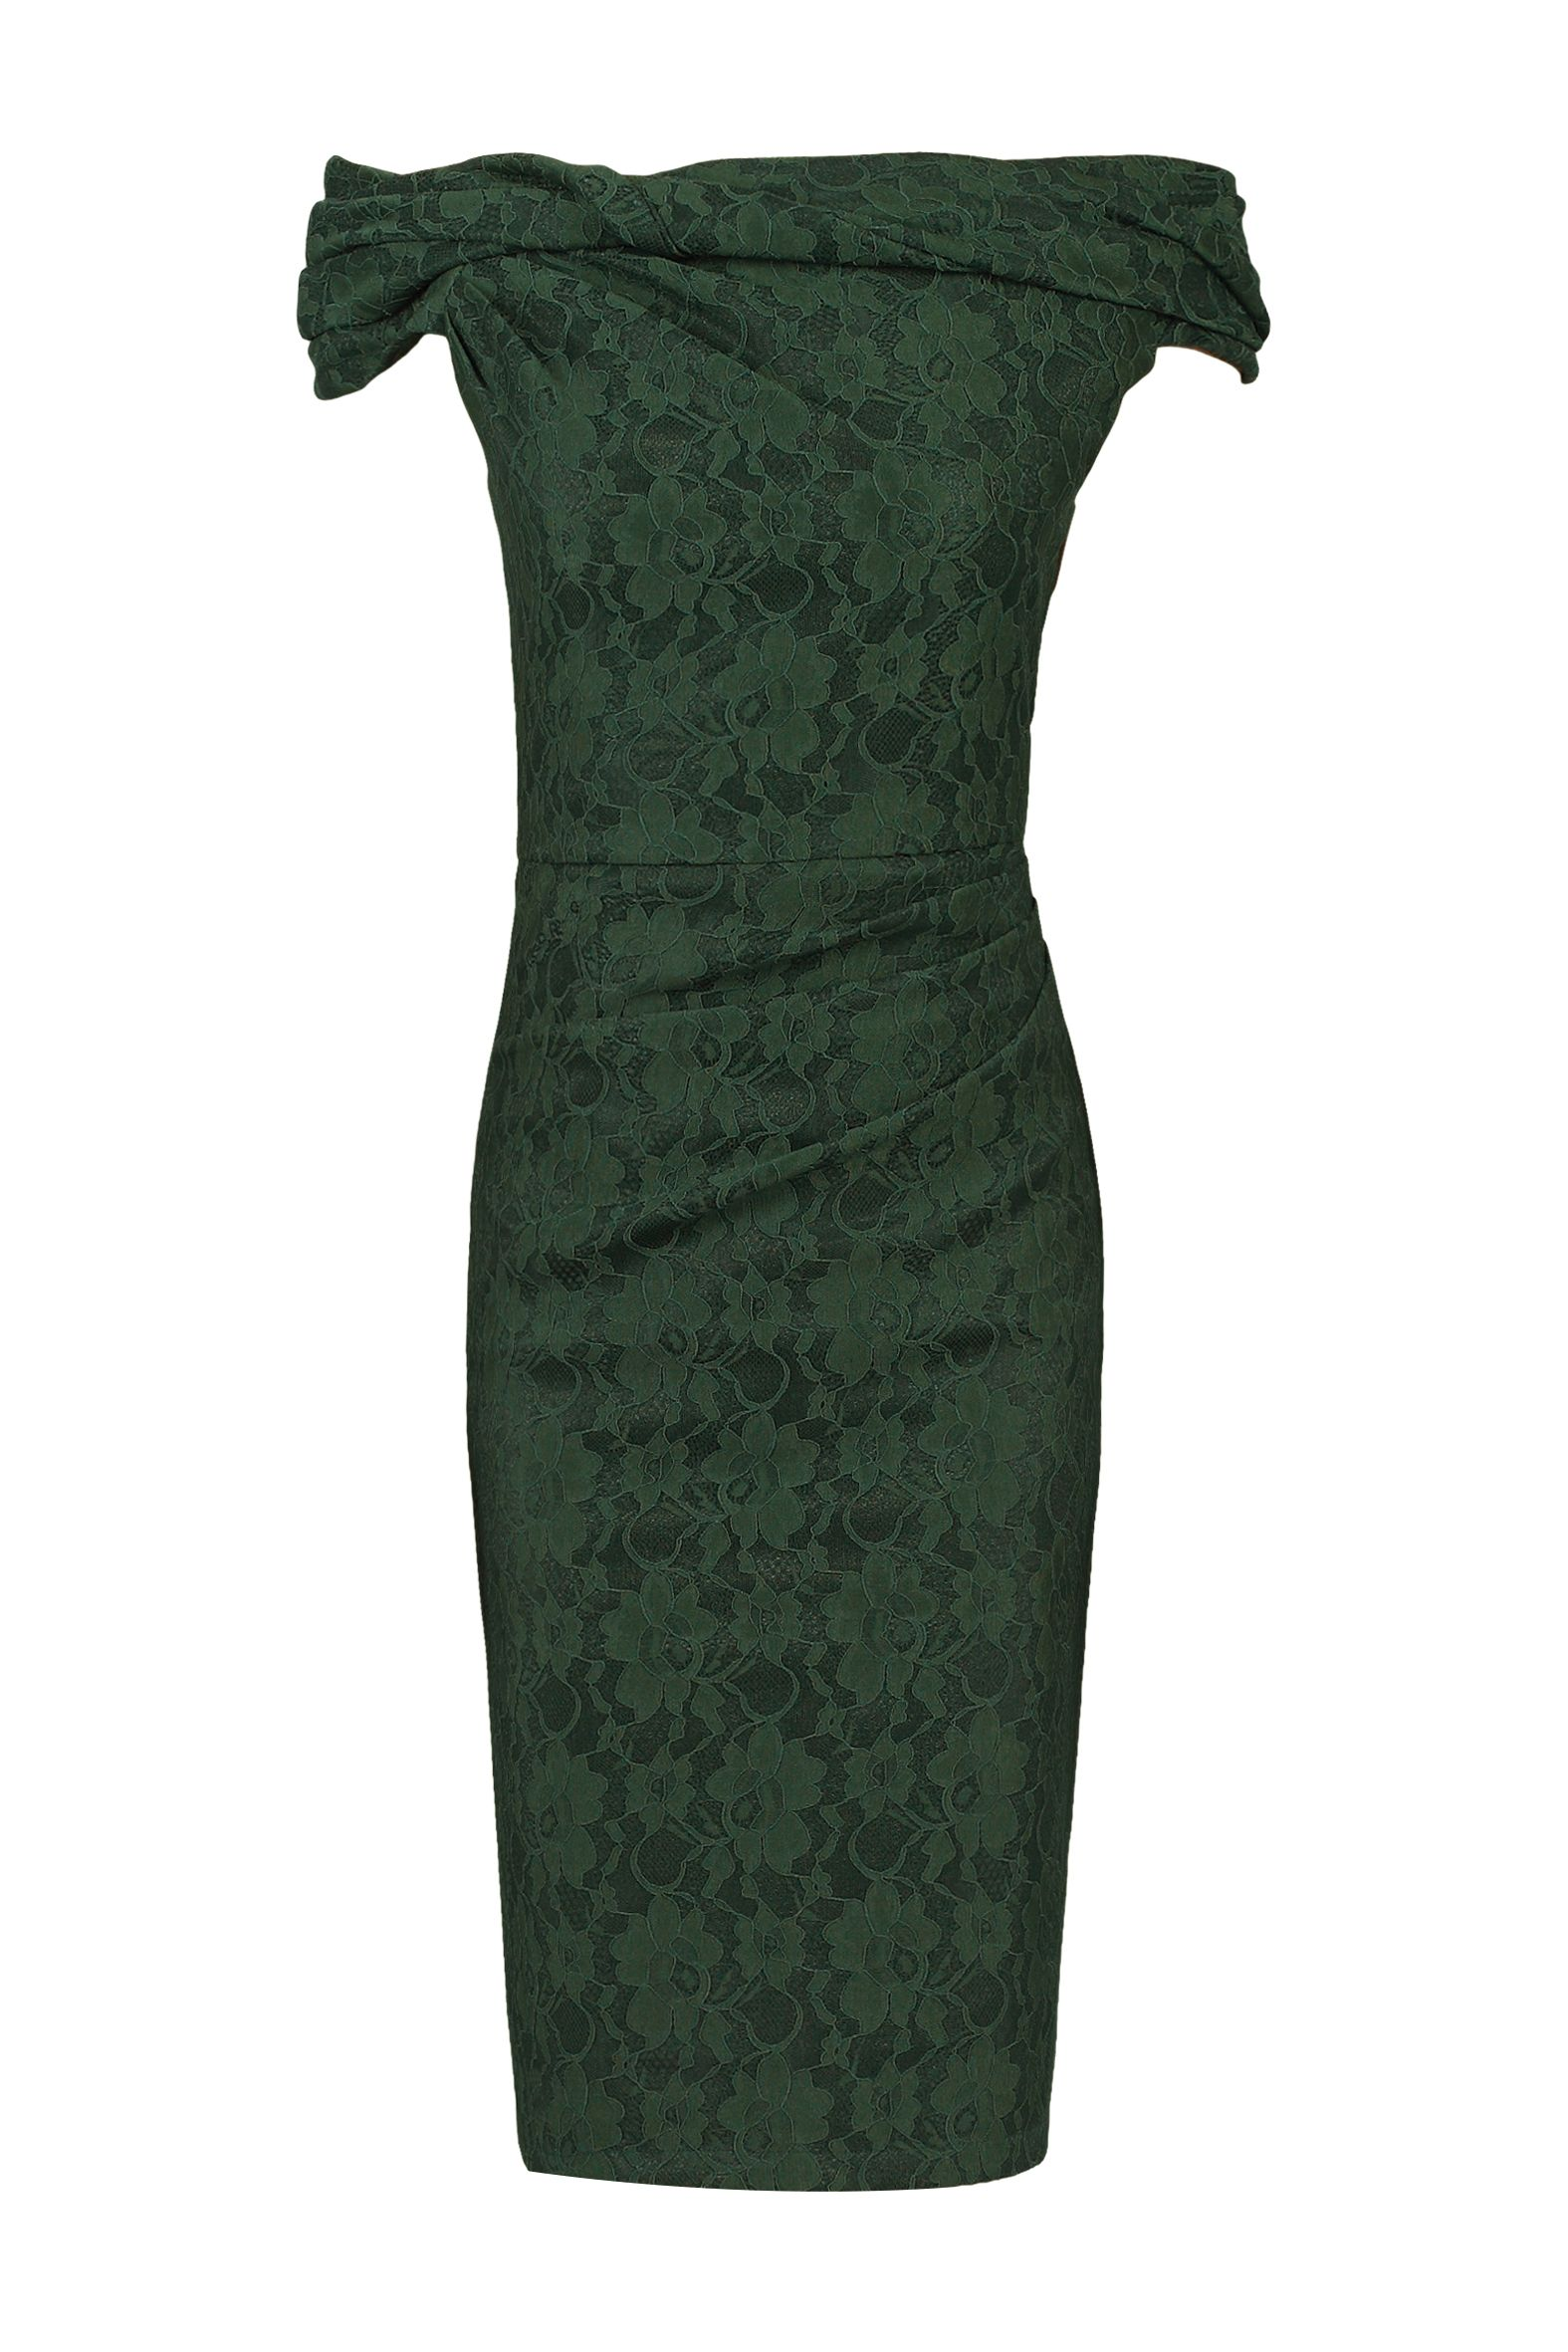 Jolie Moi Lace Bonded Bardot Neck Dress, Green